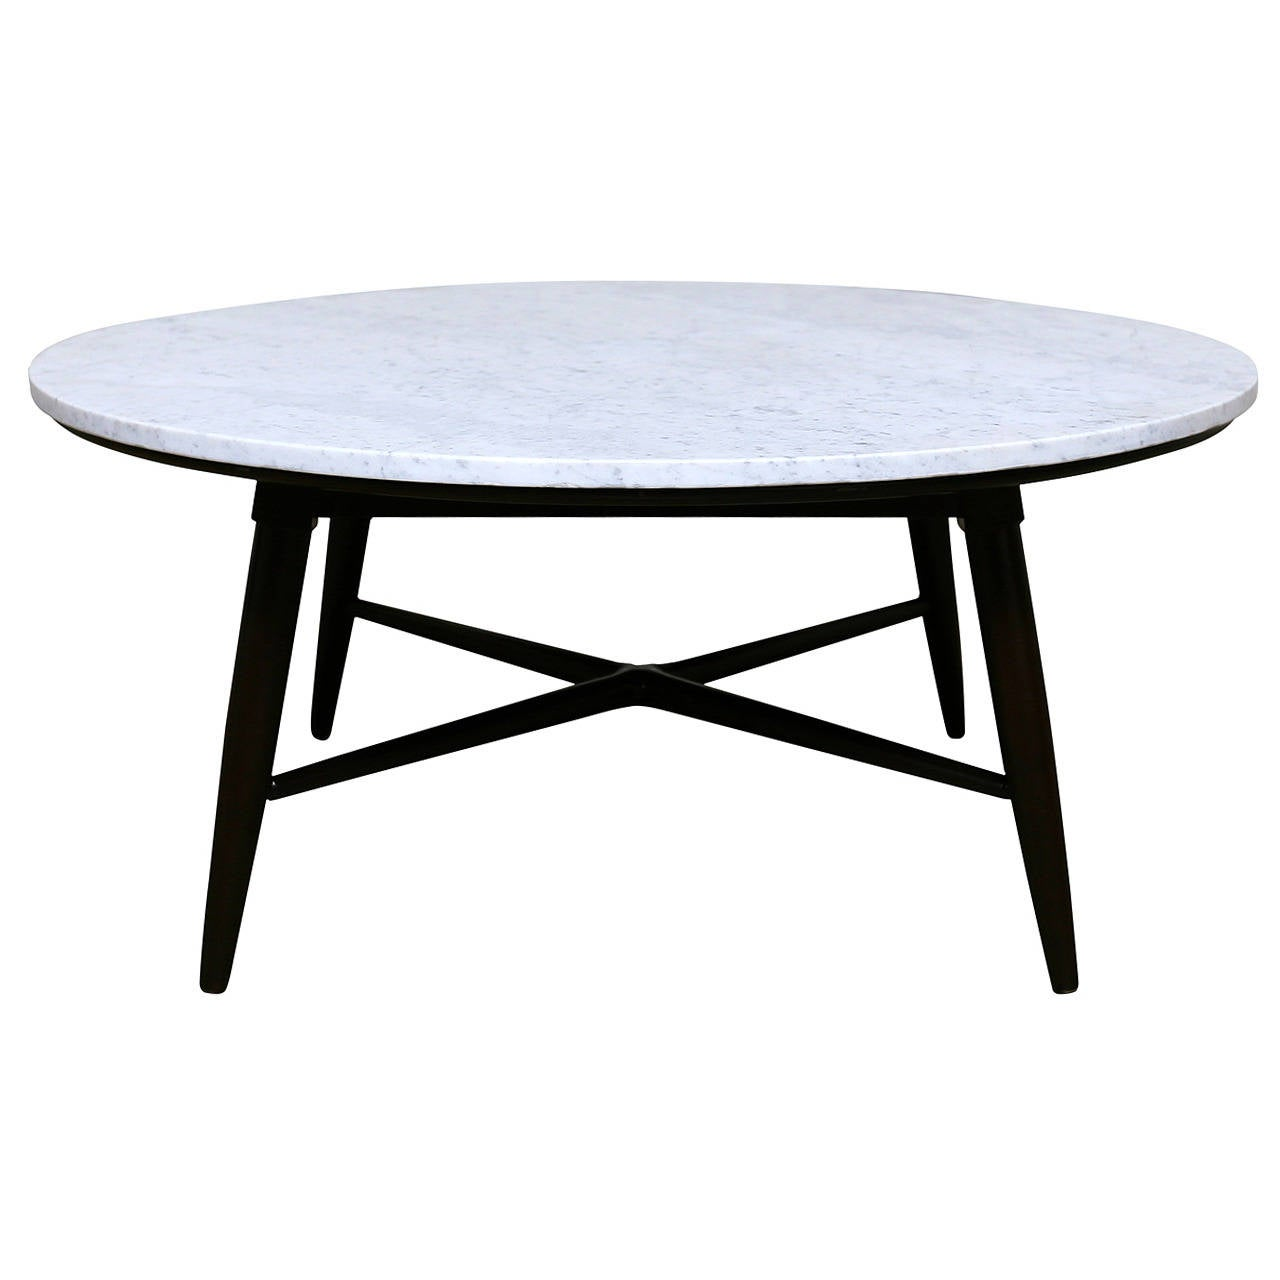 Round marble x base coffee table at 1stdibs Bases for coffee tables